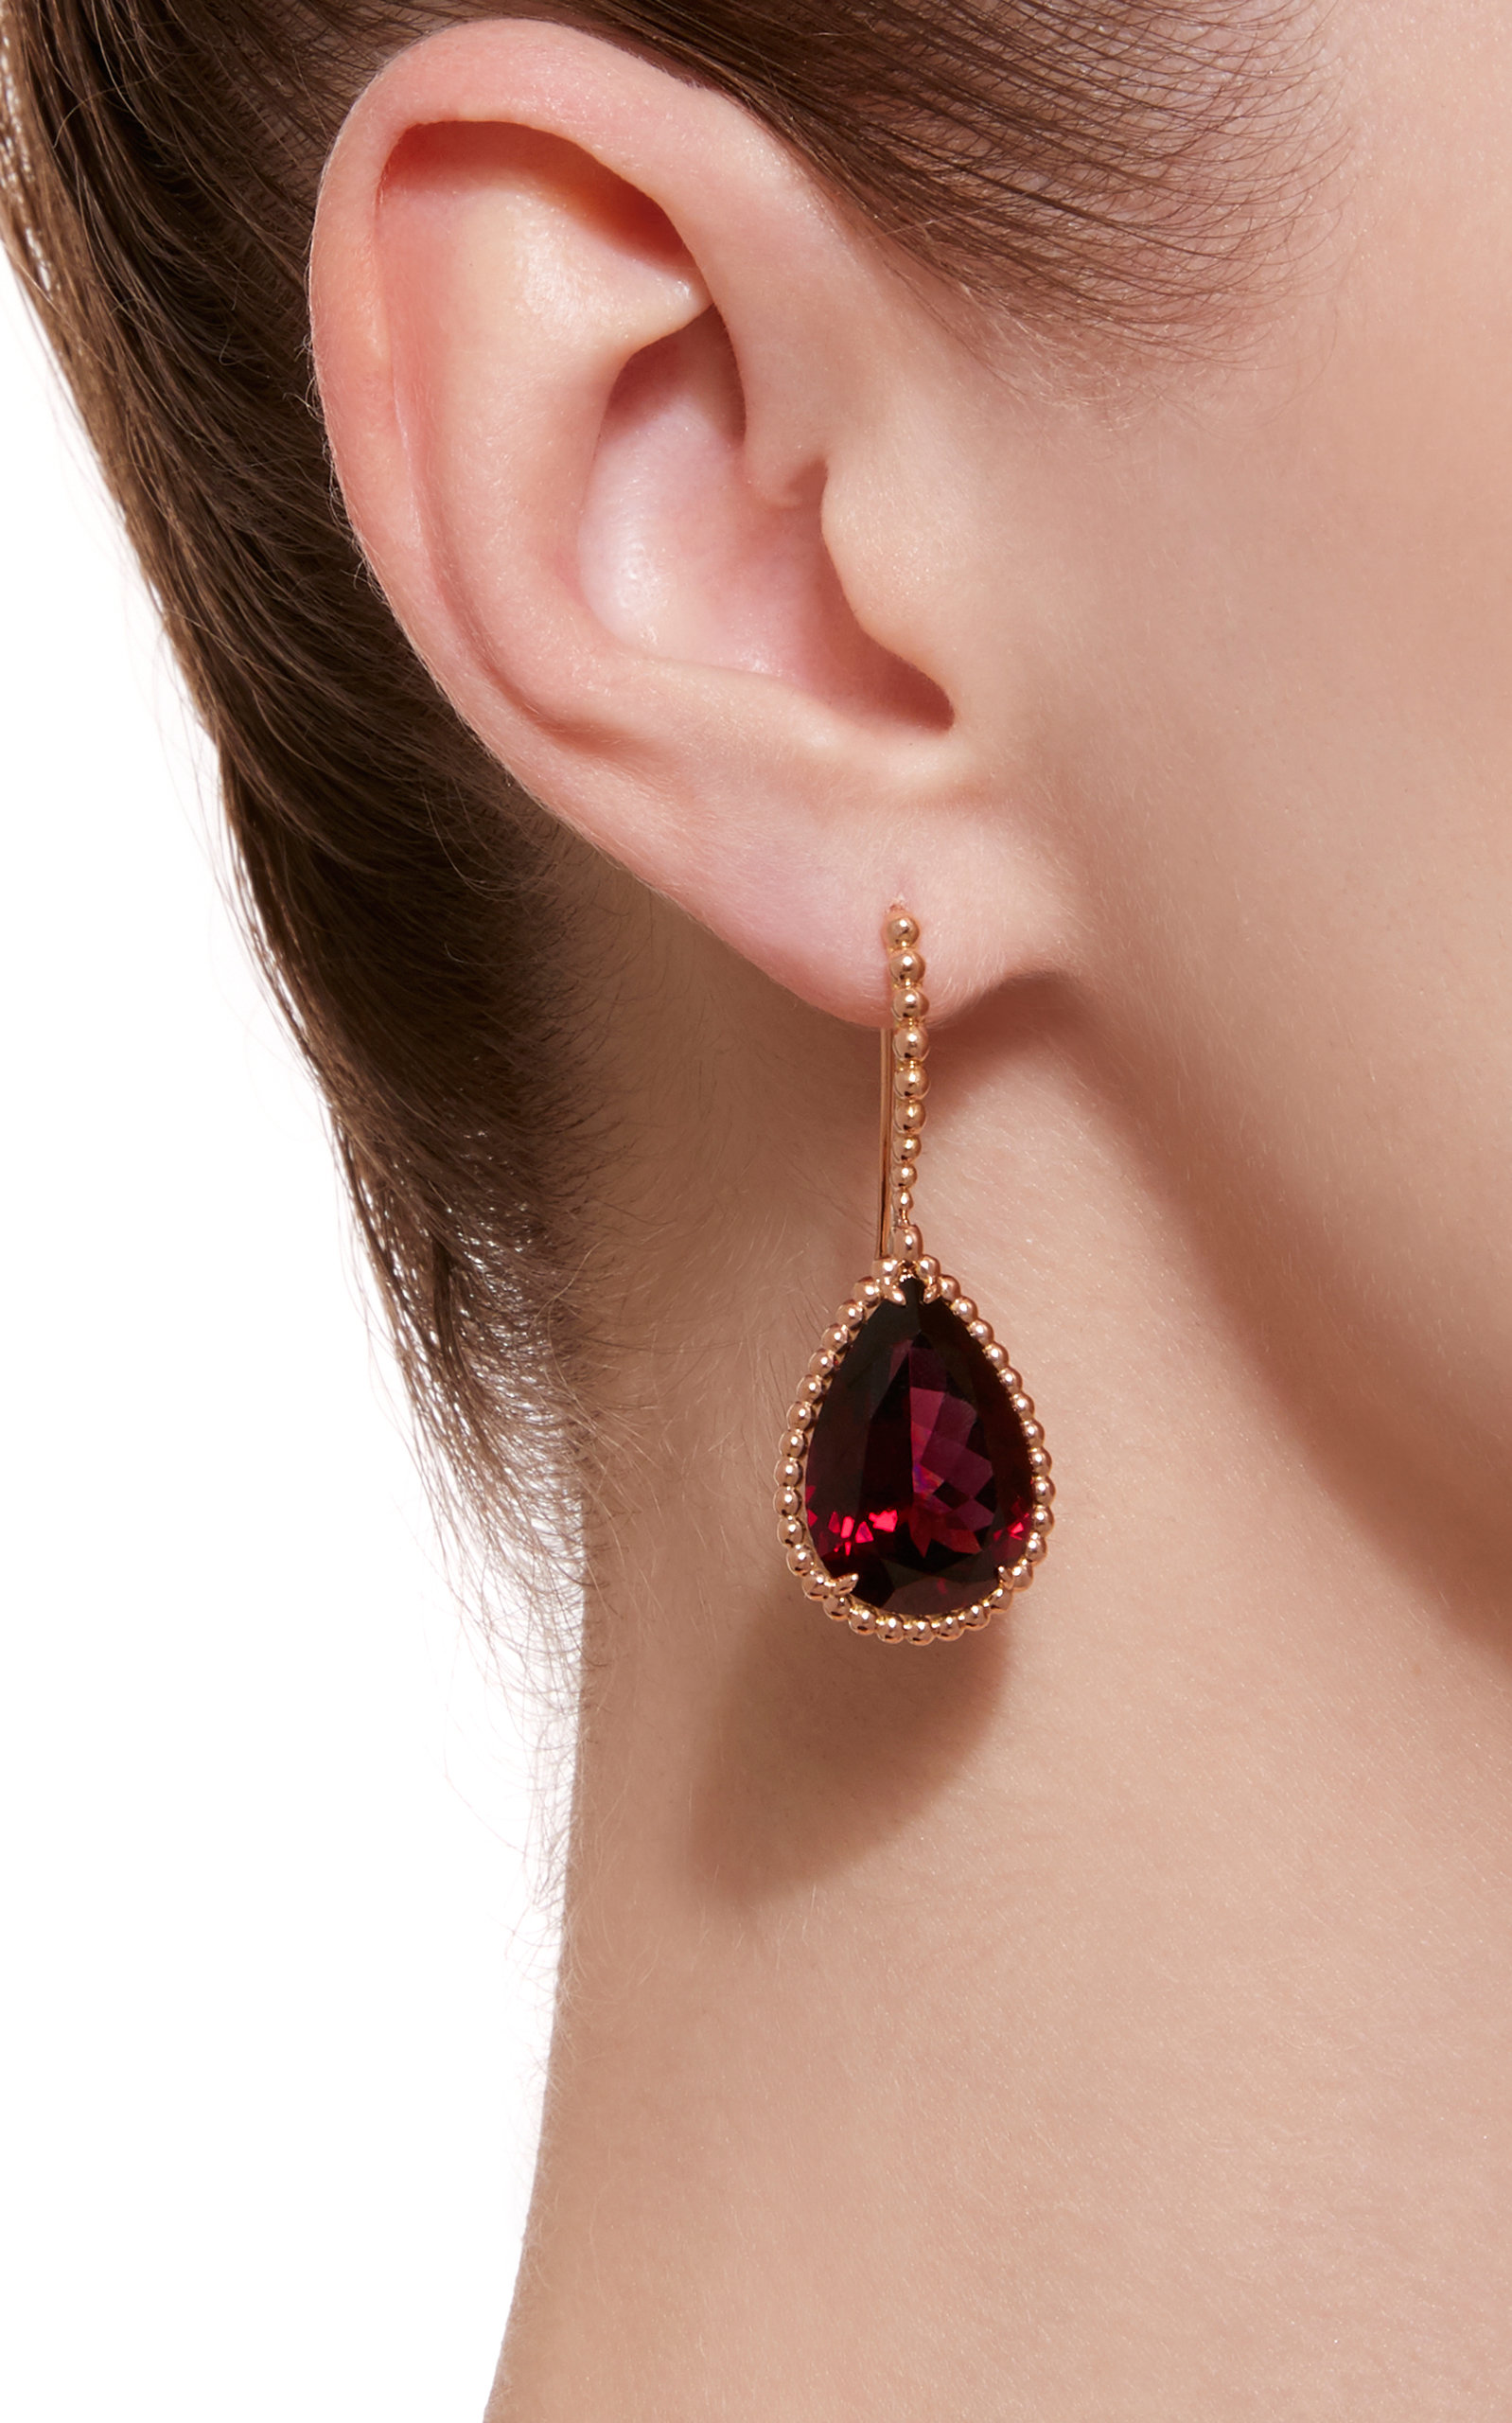 januarys gold birthstone january of silver cushion sterling on earrings s shape garnet yellow spotlight and facets drop rhodolite